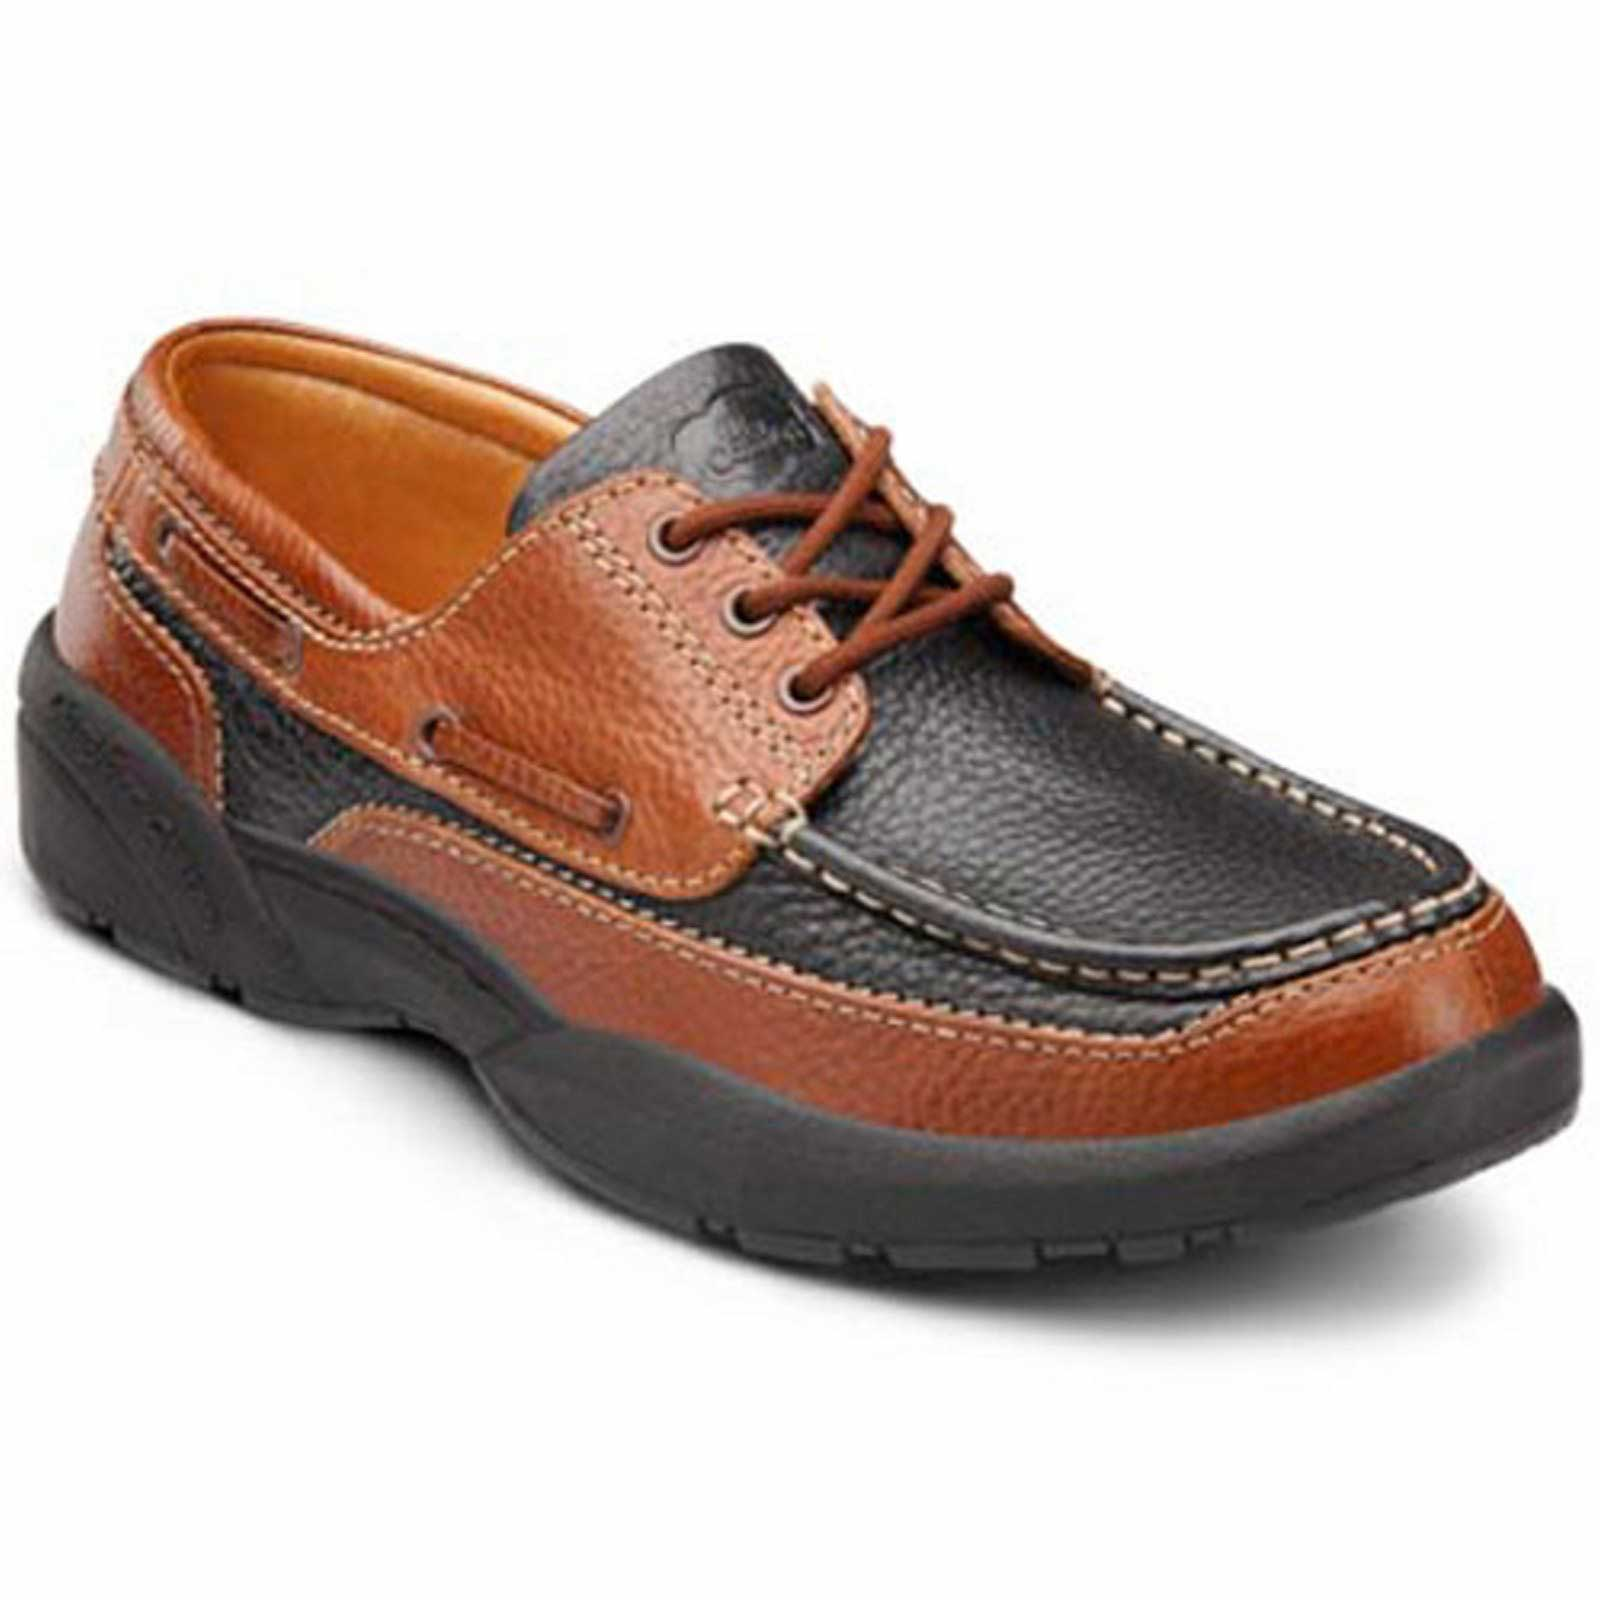 The Dr. Comfort Patrick - Black/Chestnut - Casual and Boat Shoe